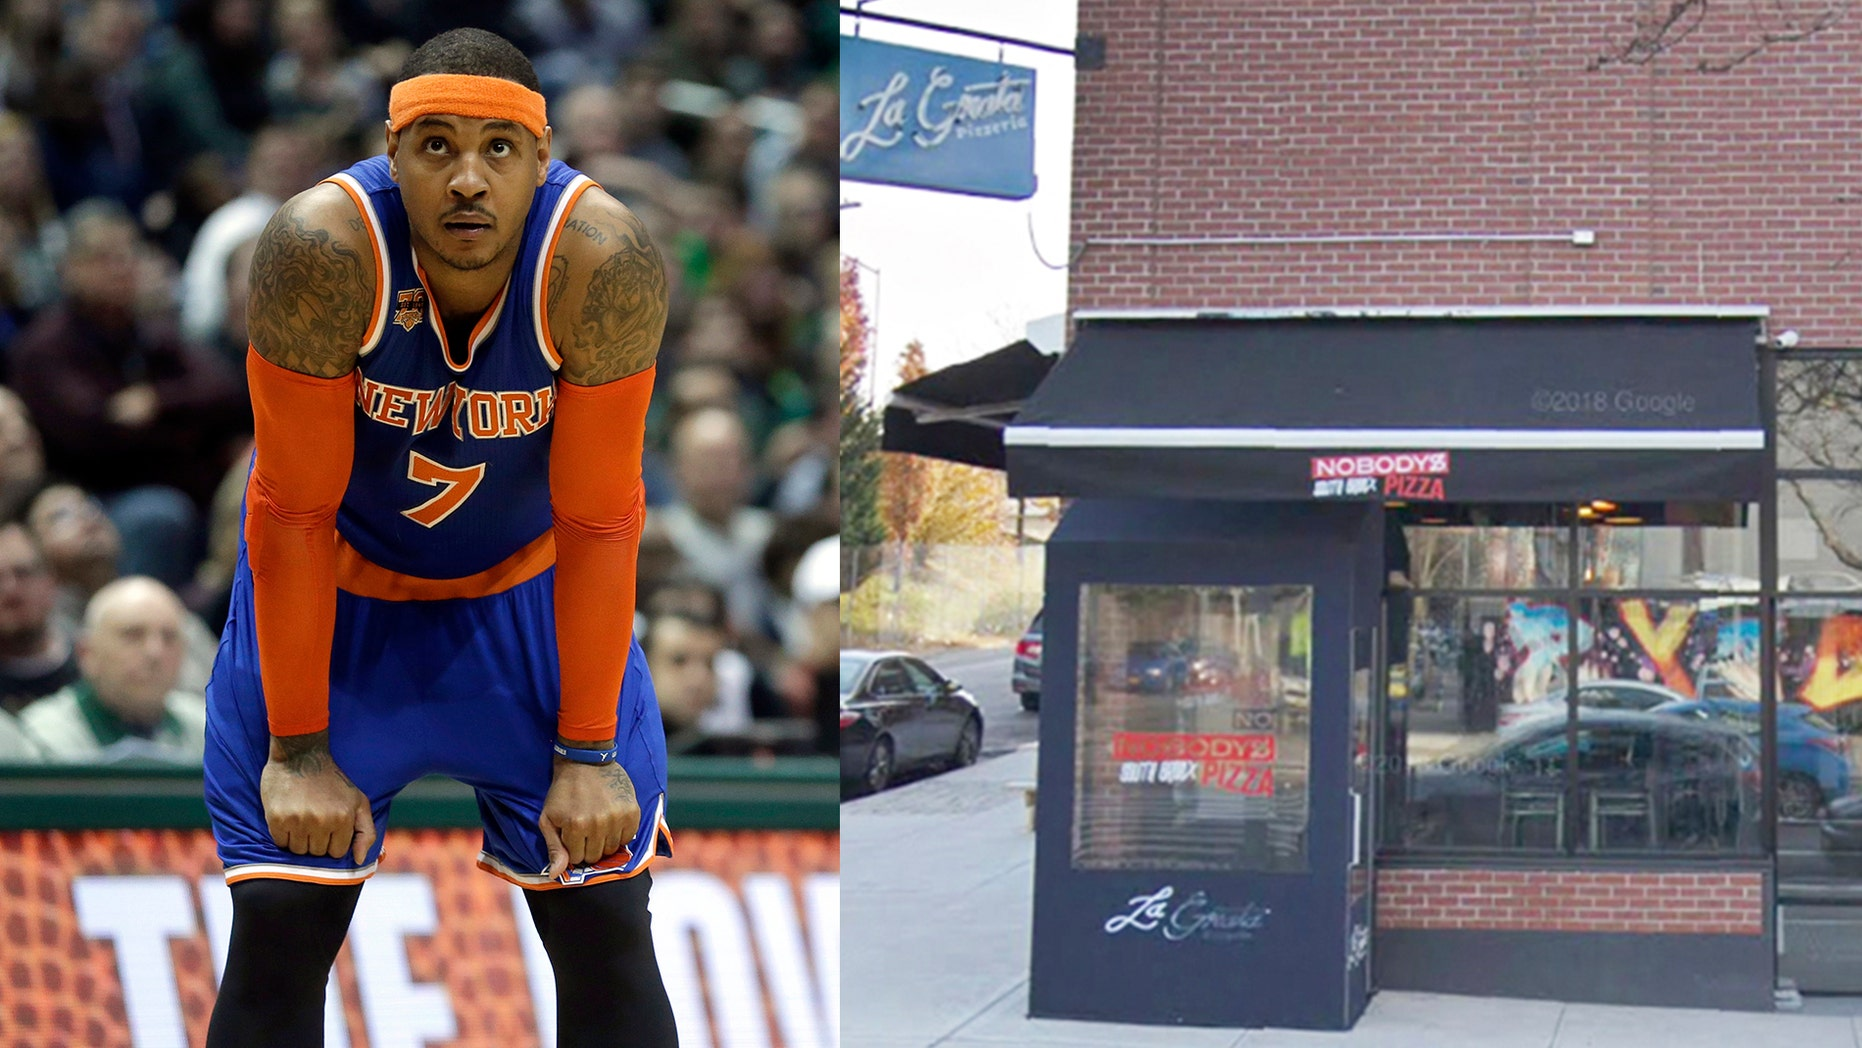 The basketball pro has big big plans to roll out a chain of sports bars and pizza joints nationwide.